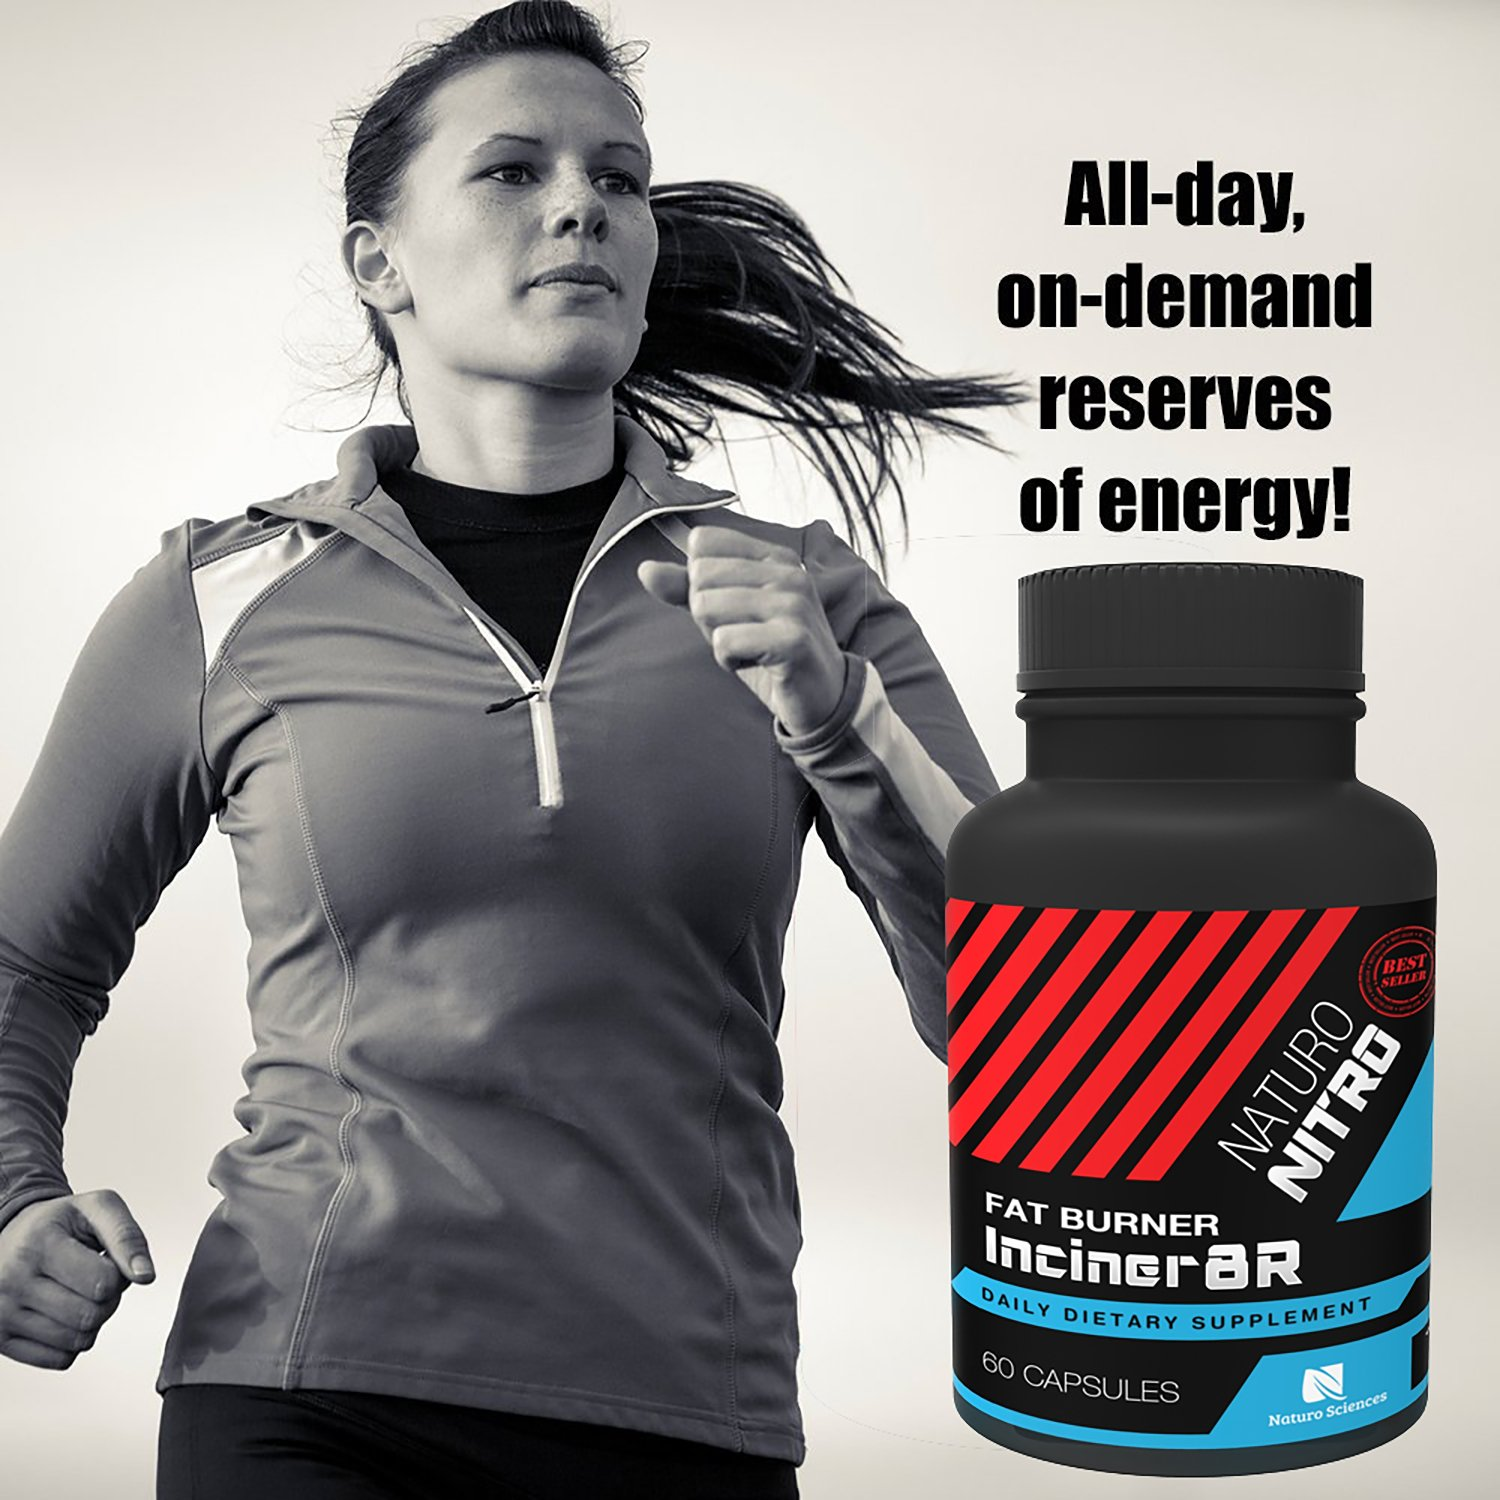 benefits of workout supplements Regular exercise is one of the best things you can do for your health learn about all of the benefits, plus tips on adding exercise to your routine.